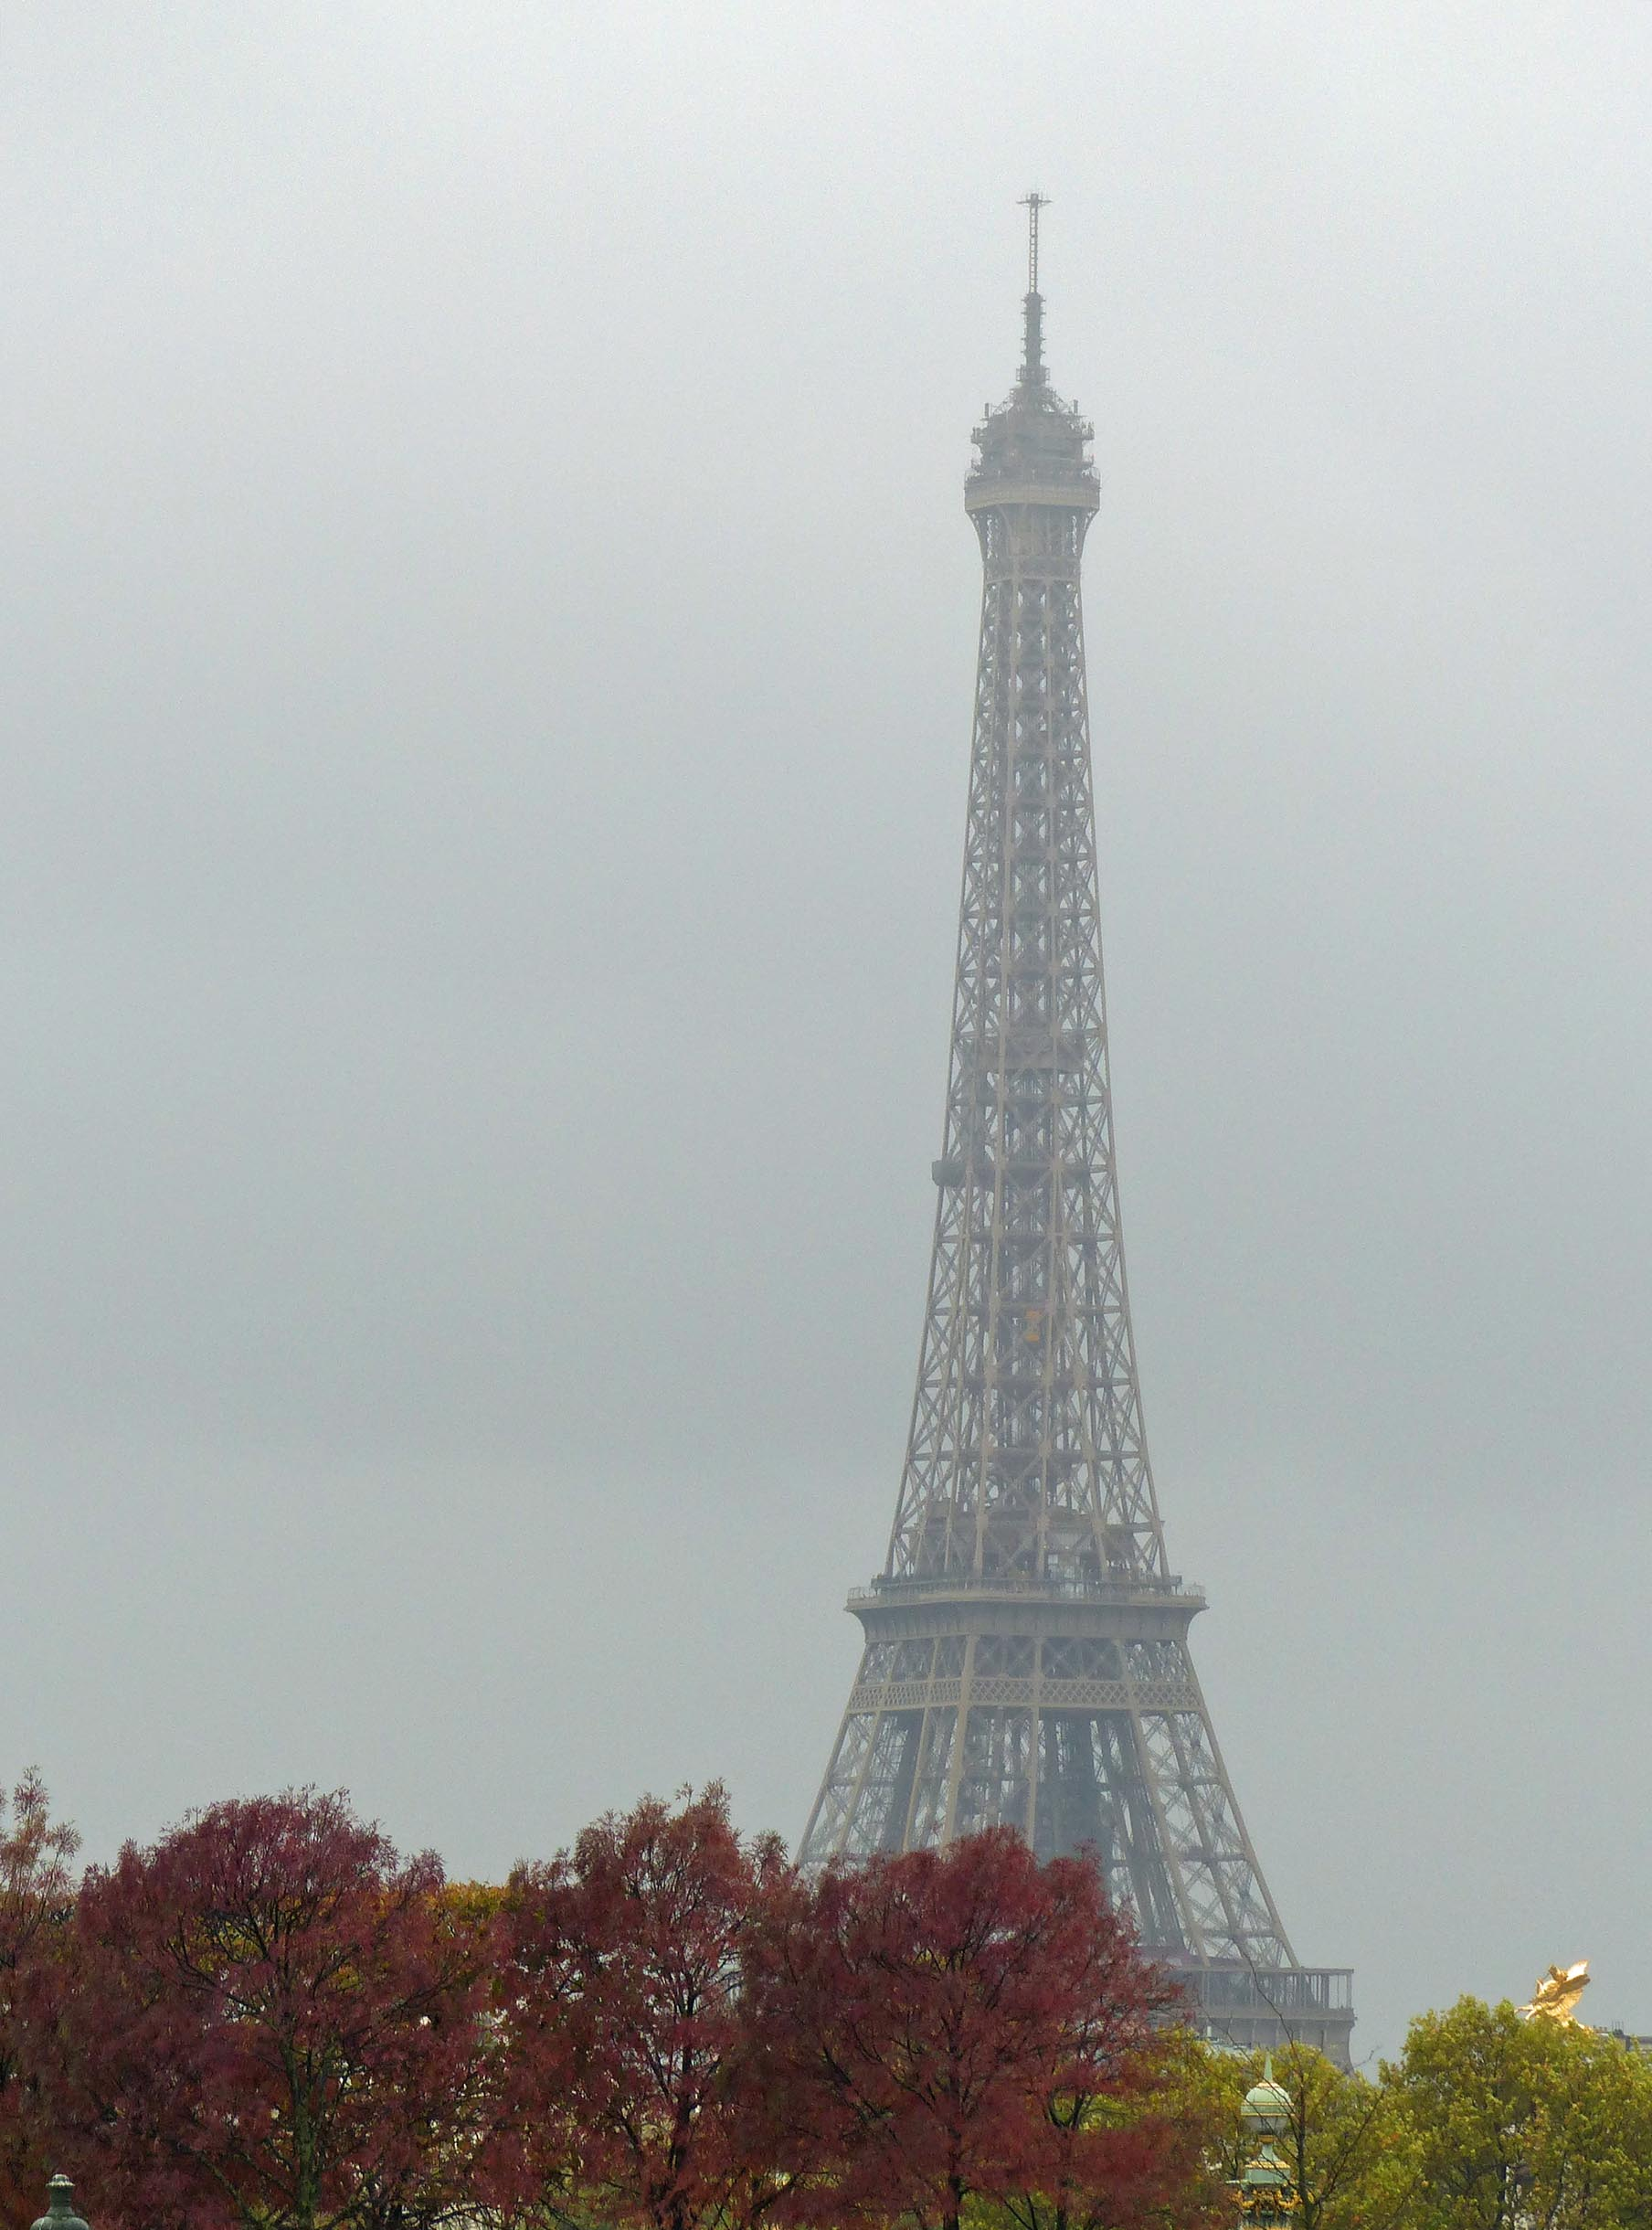 Misty view of Eiffel Tower